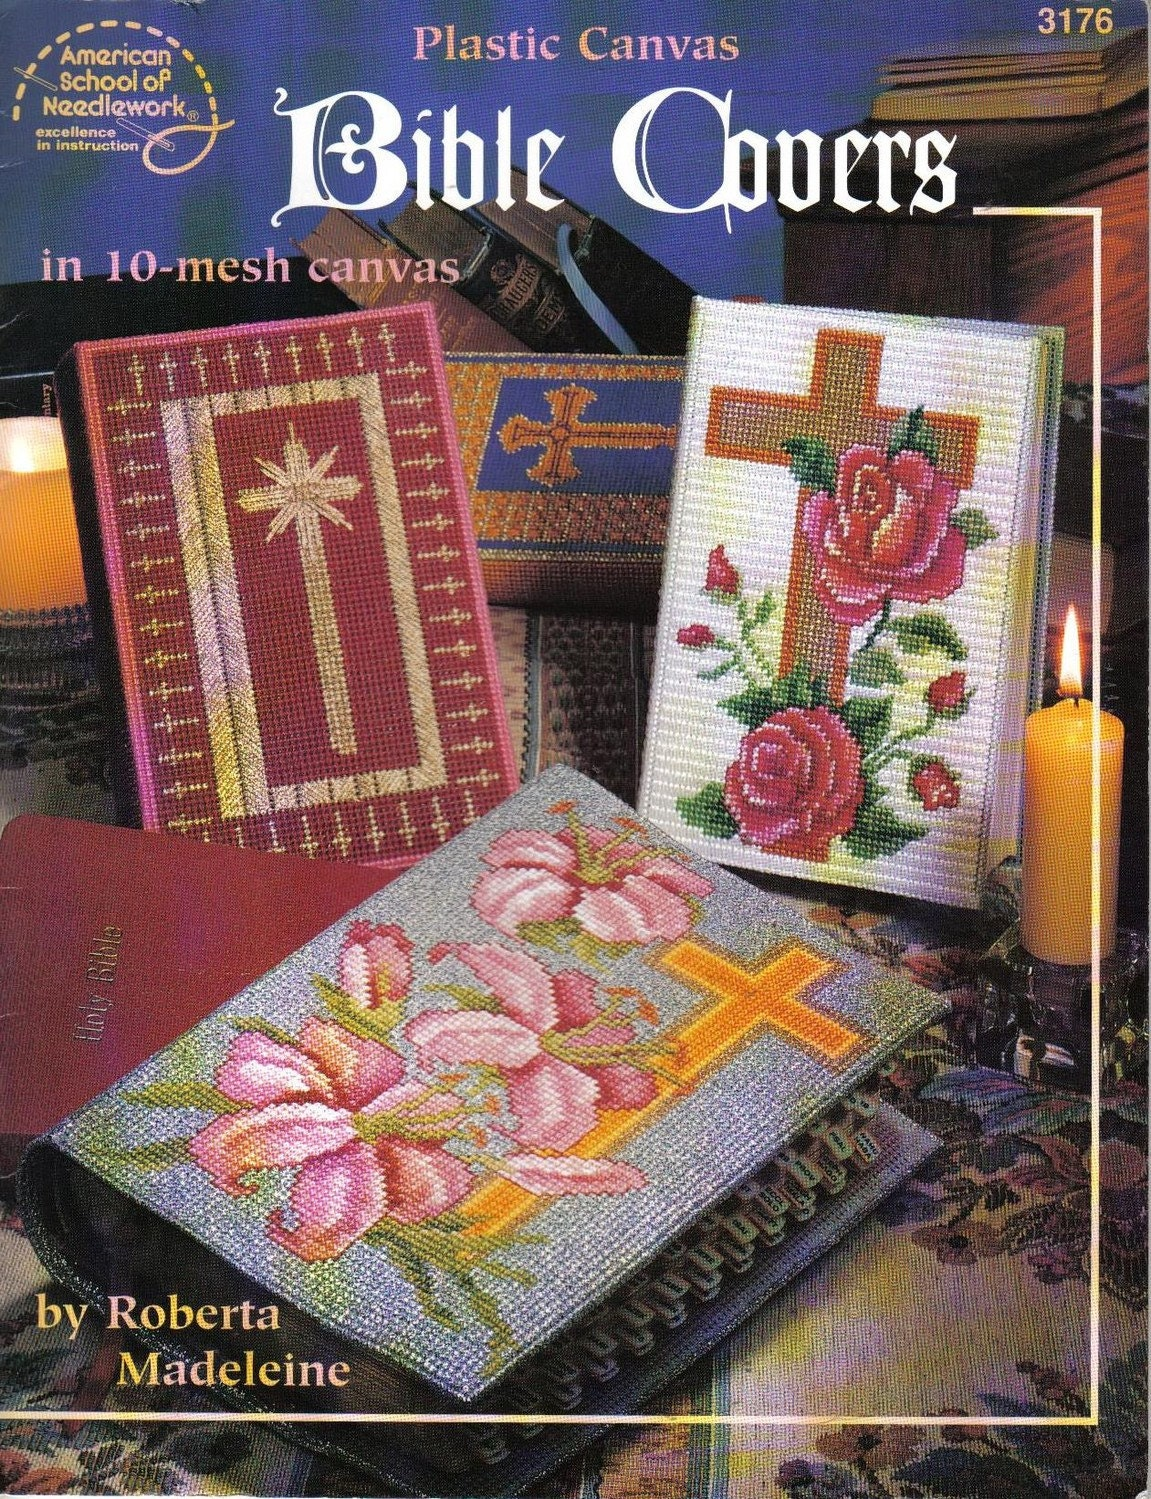 Plastic Canvas Book Cover Patterns : Bible covers plastic canvas pattern book